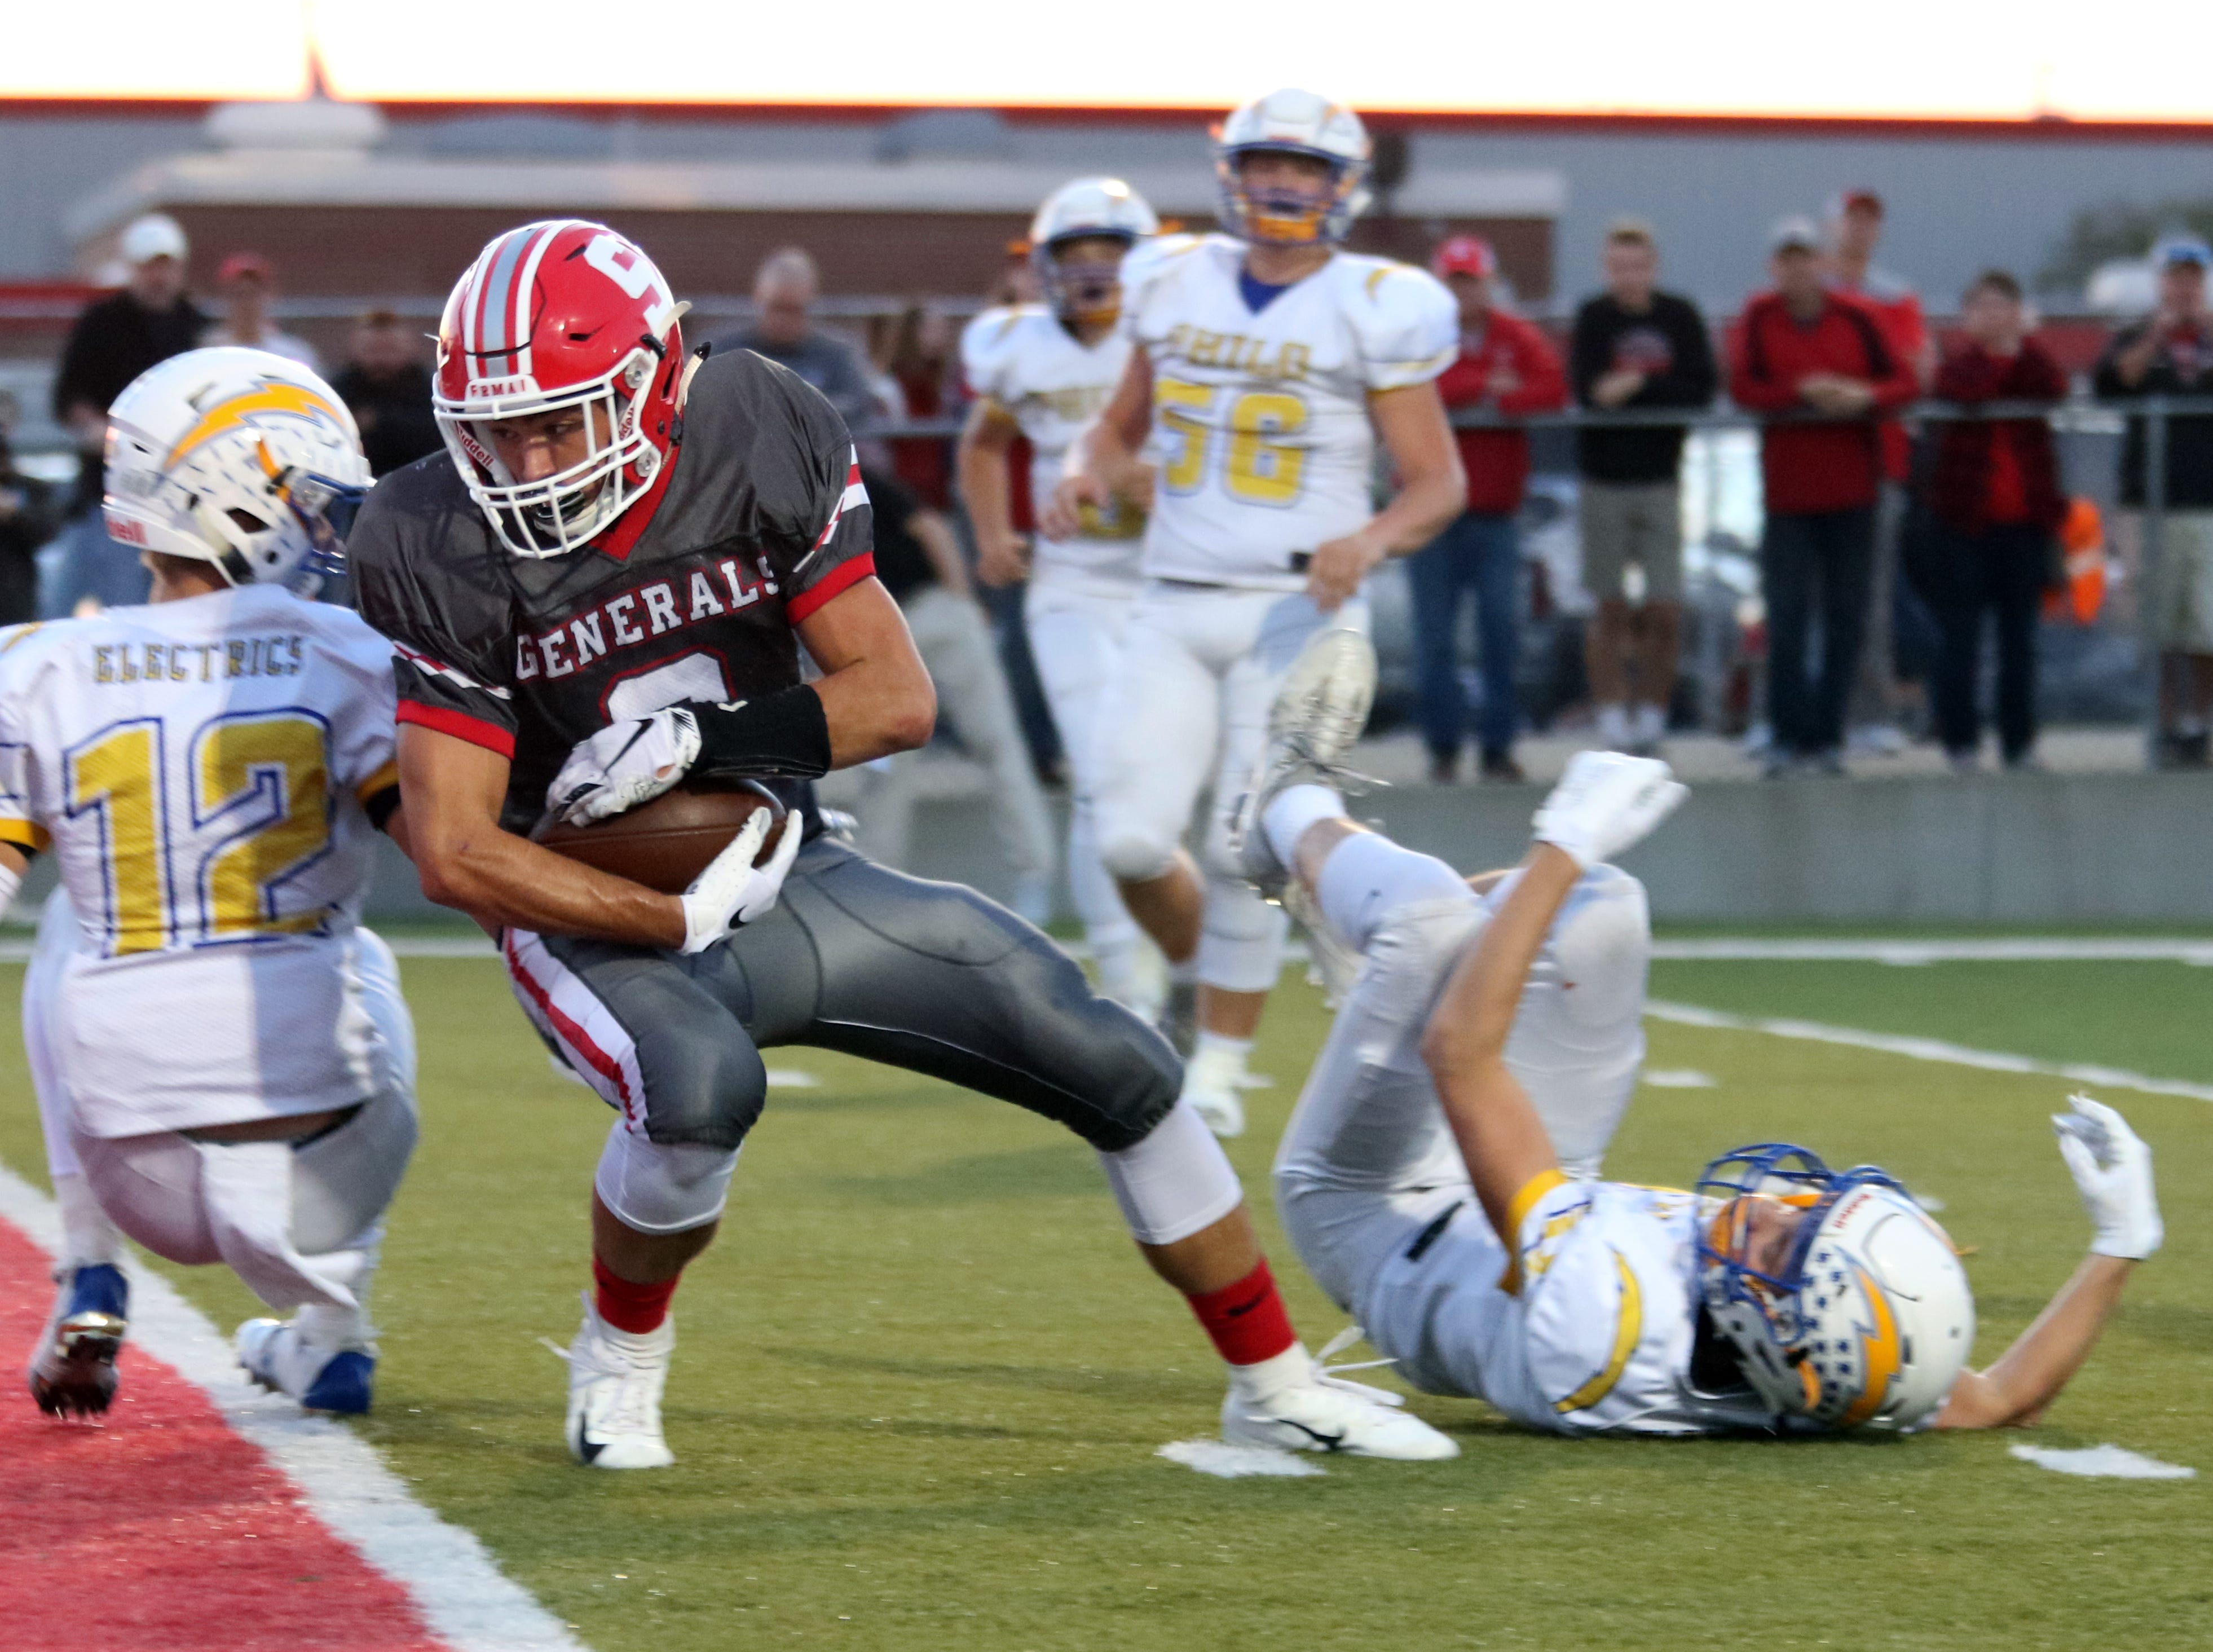 Sheridan's Cole Casto dives into the endzone with a touchdown against Philo.